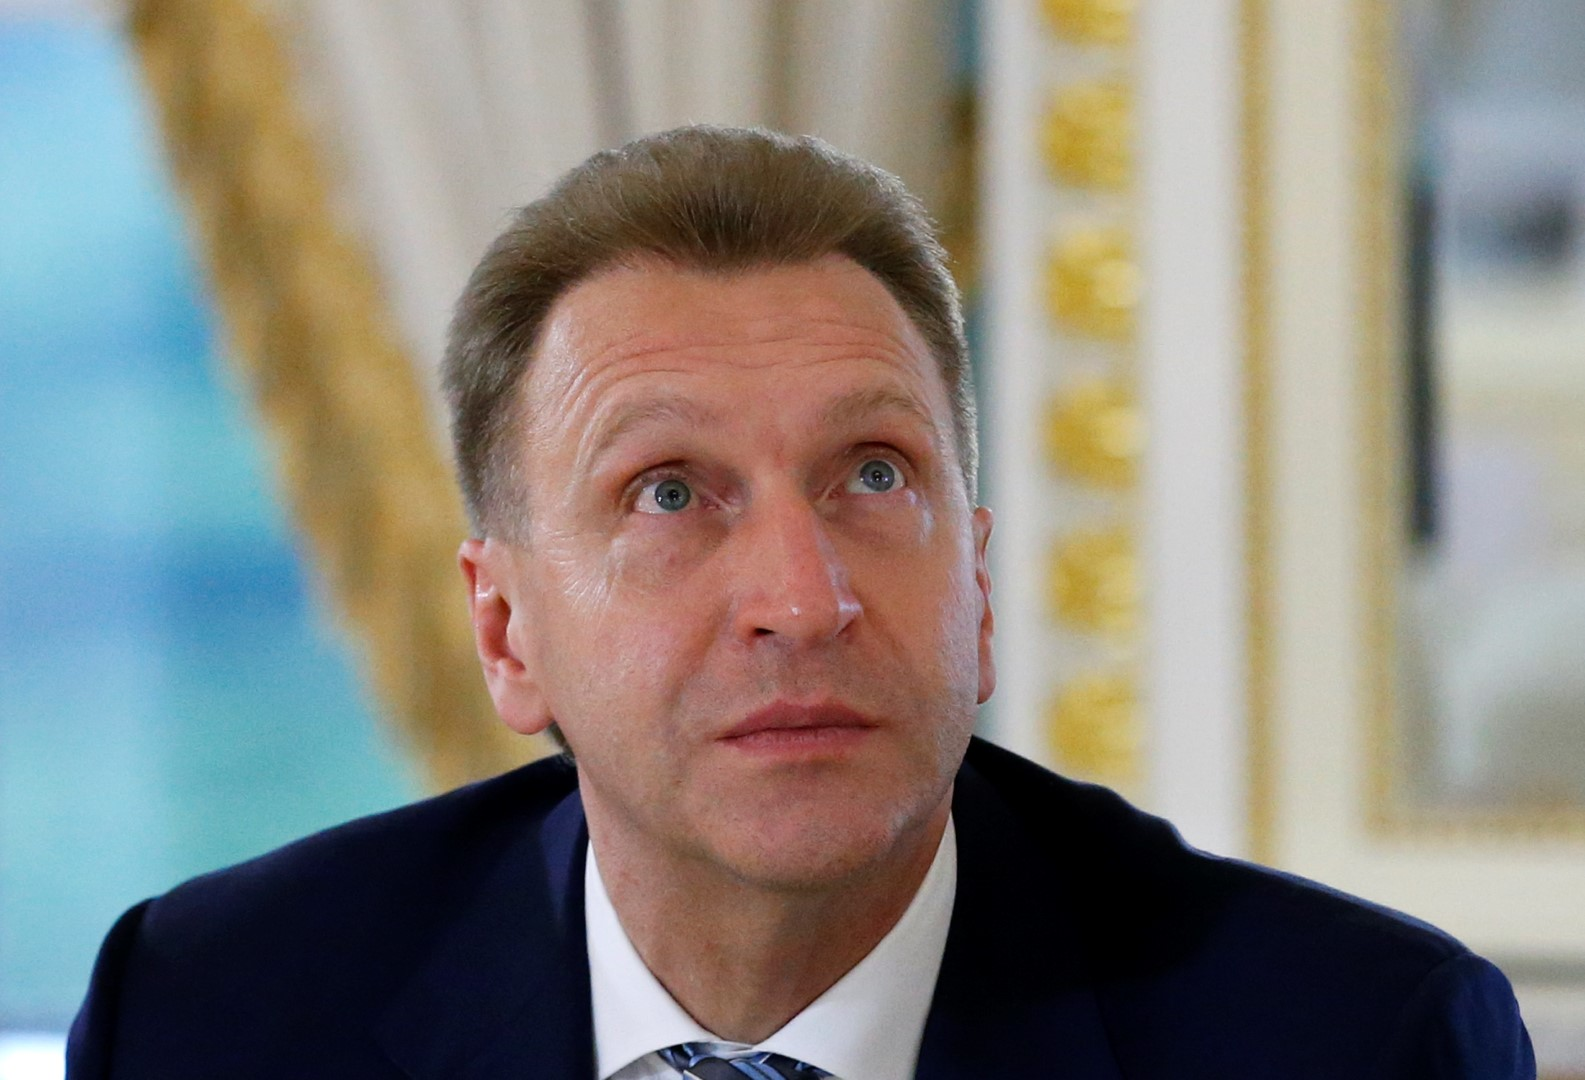 Russia's First Deputy Prime Minister Igor Shuvalov attends a meeting of President Vladimir Putin with members of Russian Direct Investment Fund and foreign investors in St. Petersburg, Russia, June 16, 2016. REUTERS/Grigory Dukor - RTX2GN8N